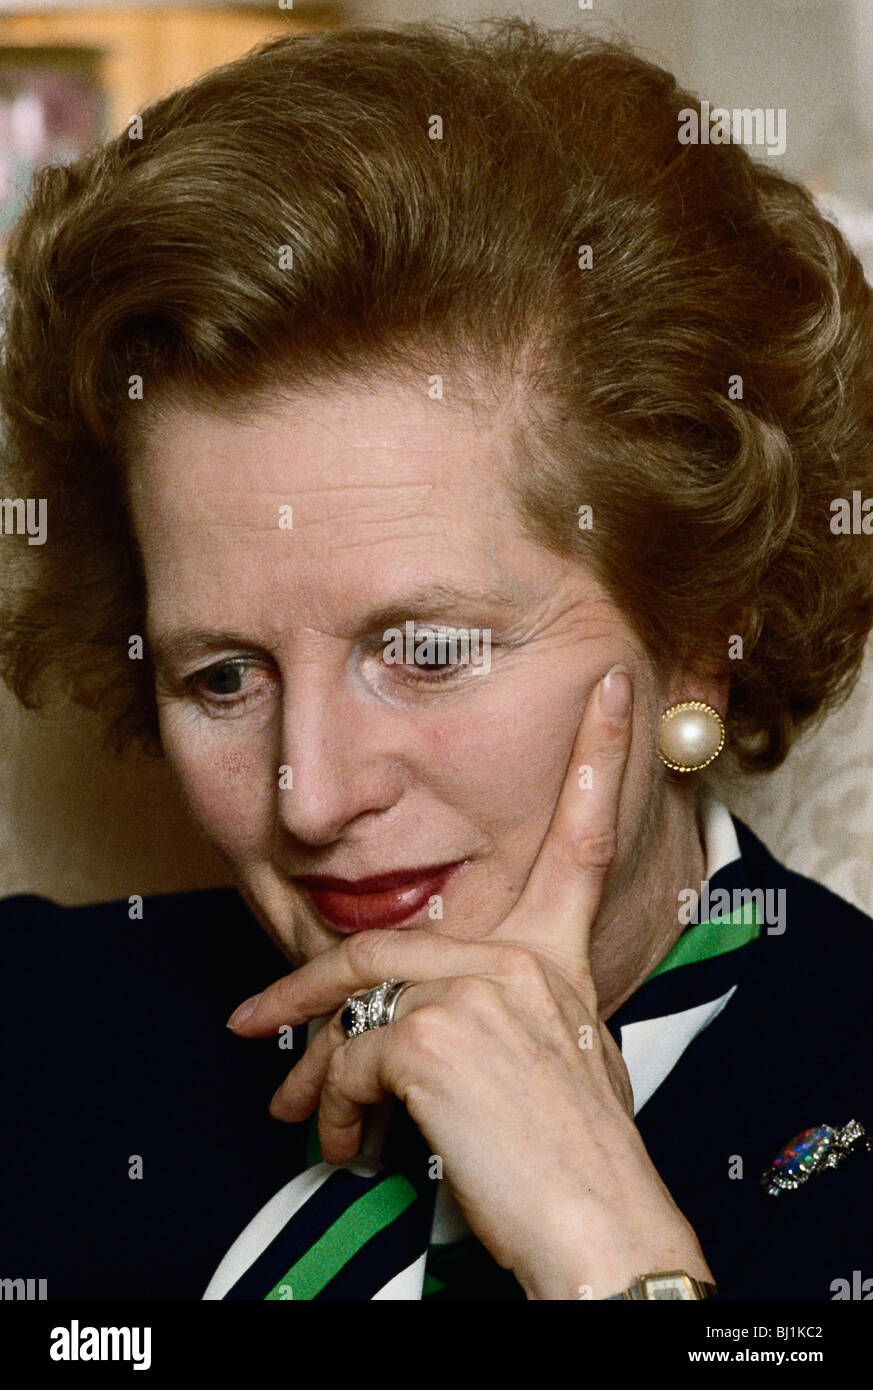 Prime Minister Margaret Thatcher pensive expression during photo session in sitting room at 10 Downing Street London - Stock Image